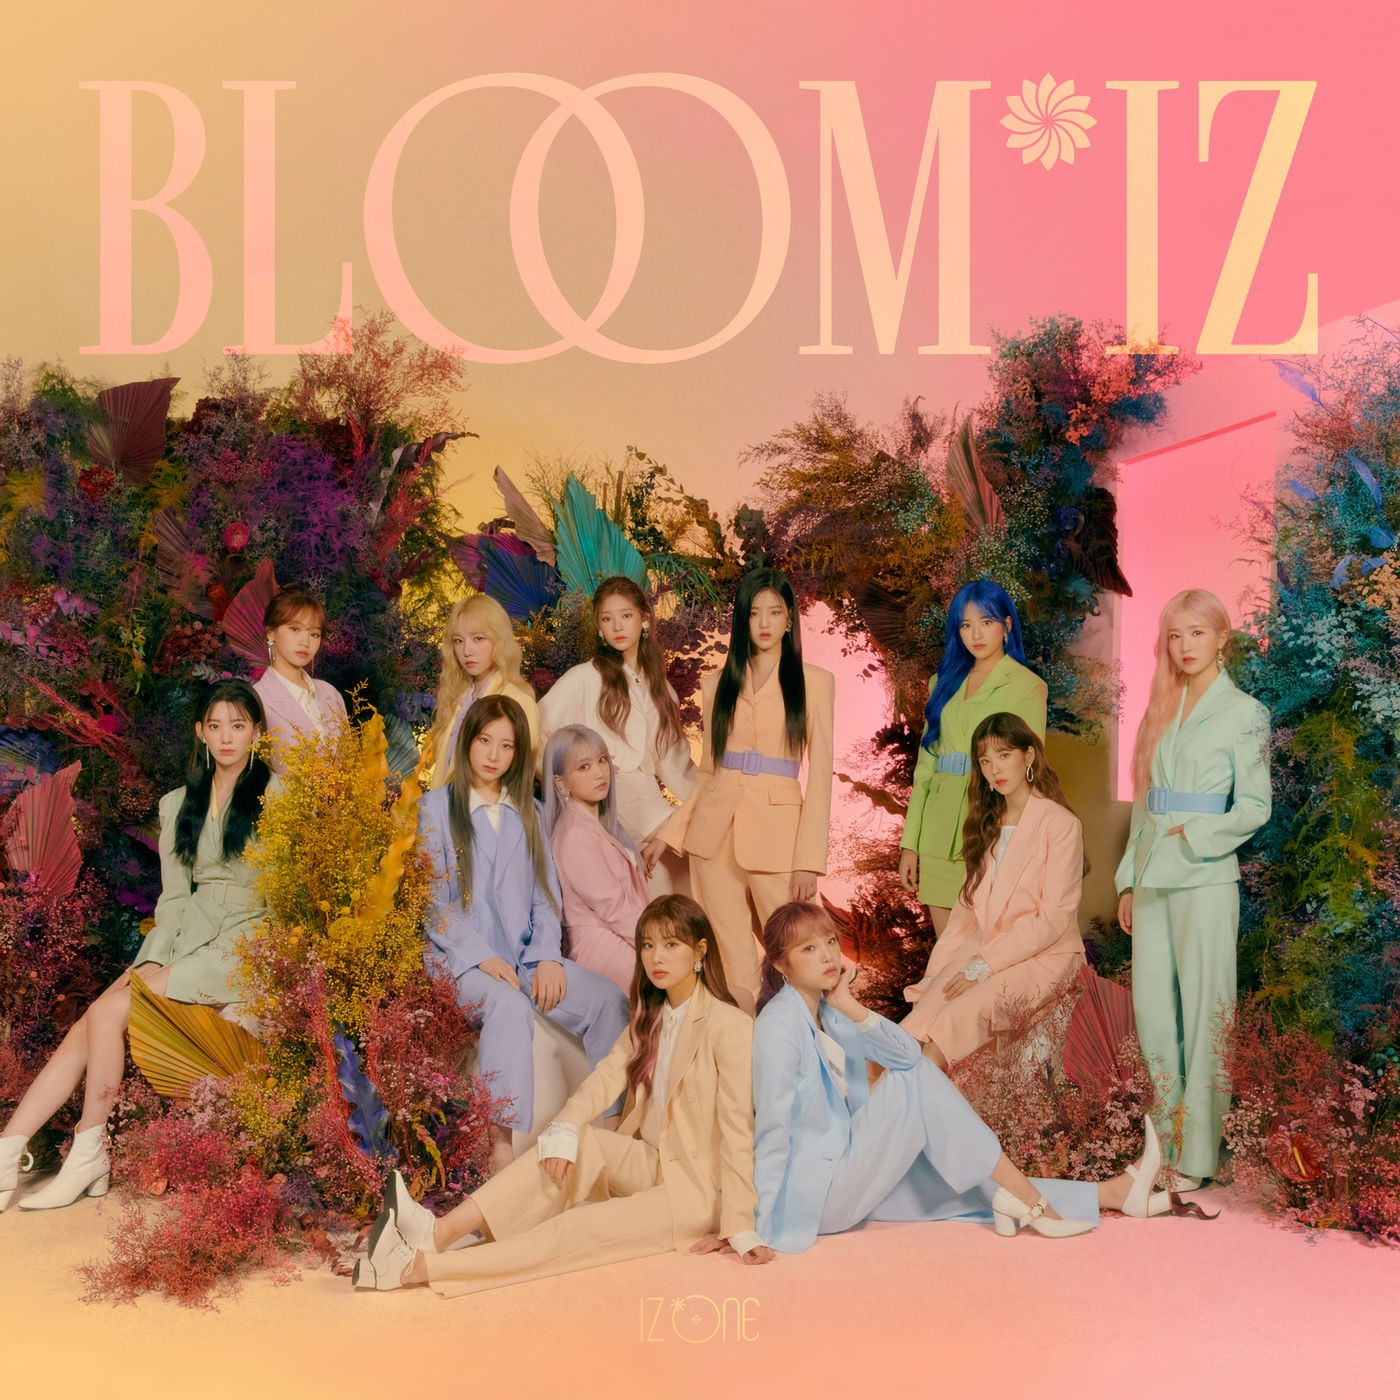 IZ*ONE – BLOOM*IZ [24bit Lossless + MP3 320 / WEB] [2020.02.17]